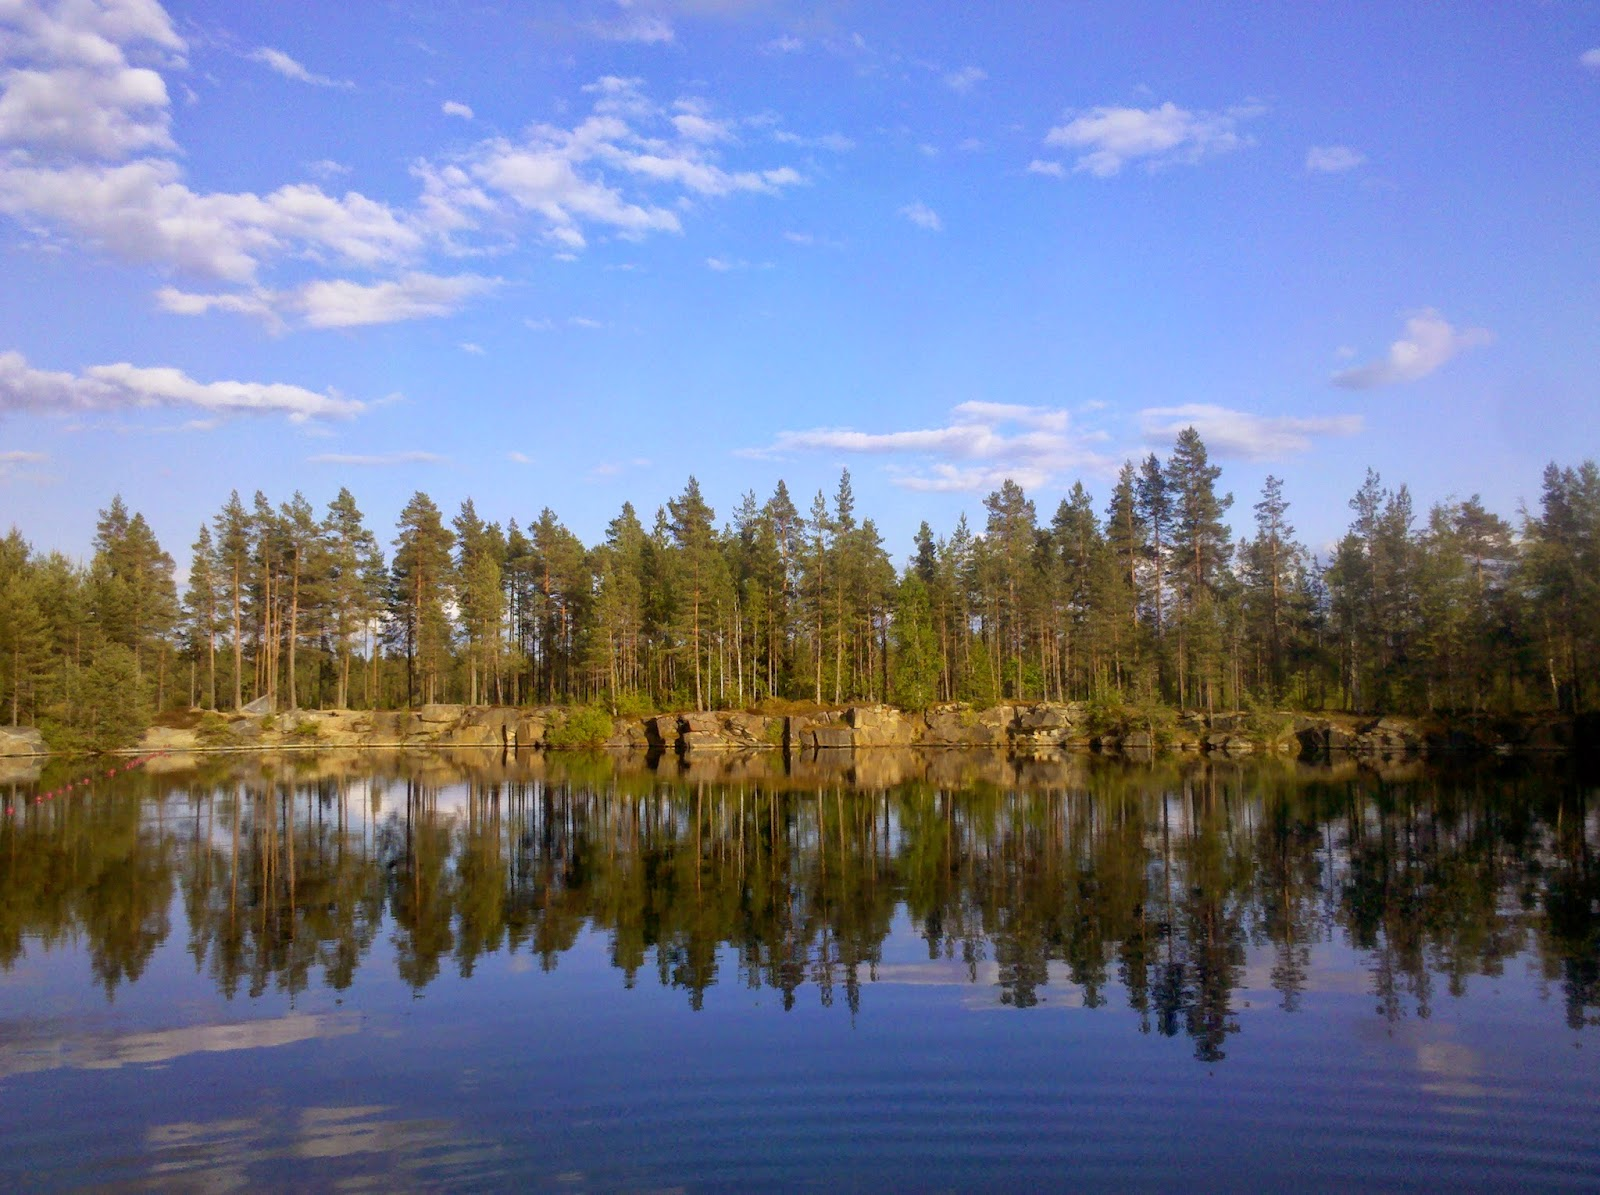 THE BIG TRIP ... an outdoor life hiking, cycling and paddling: Cycling in Finland: Conclusion ...